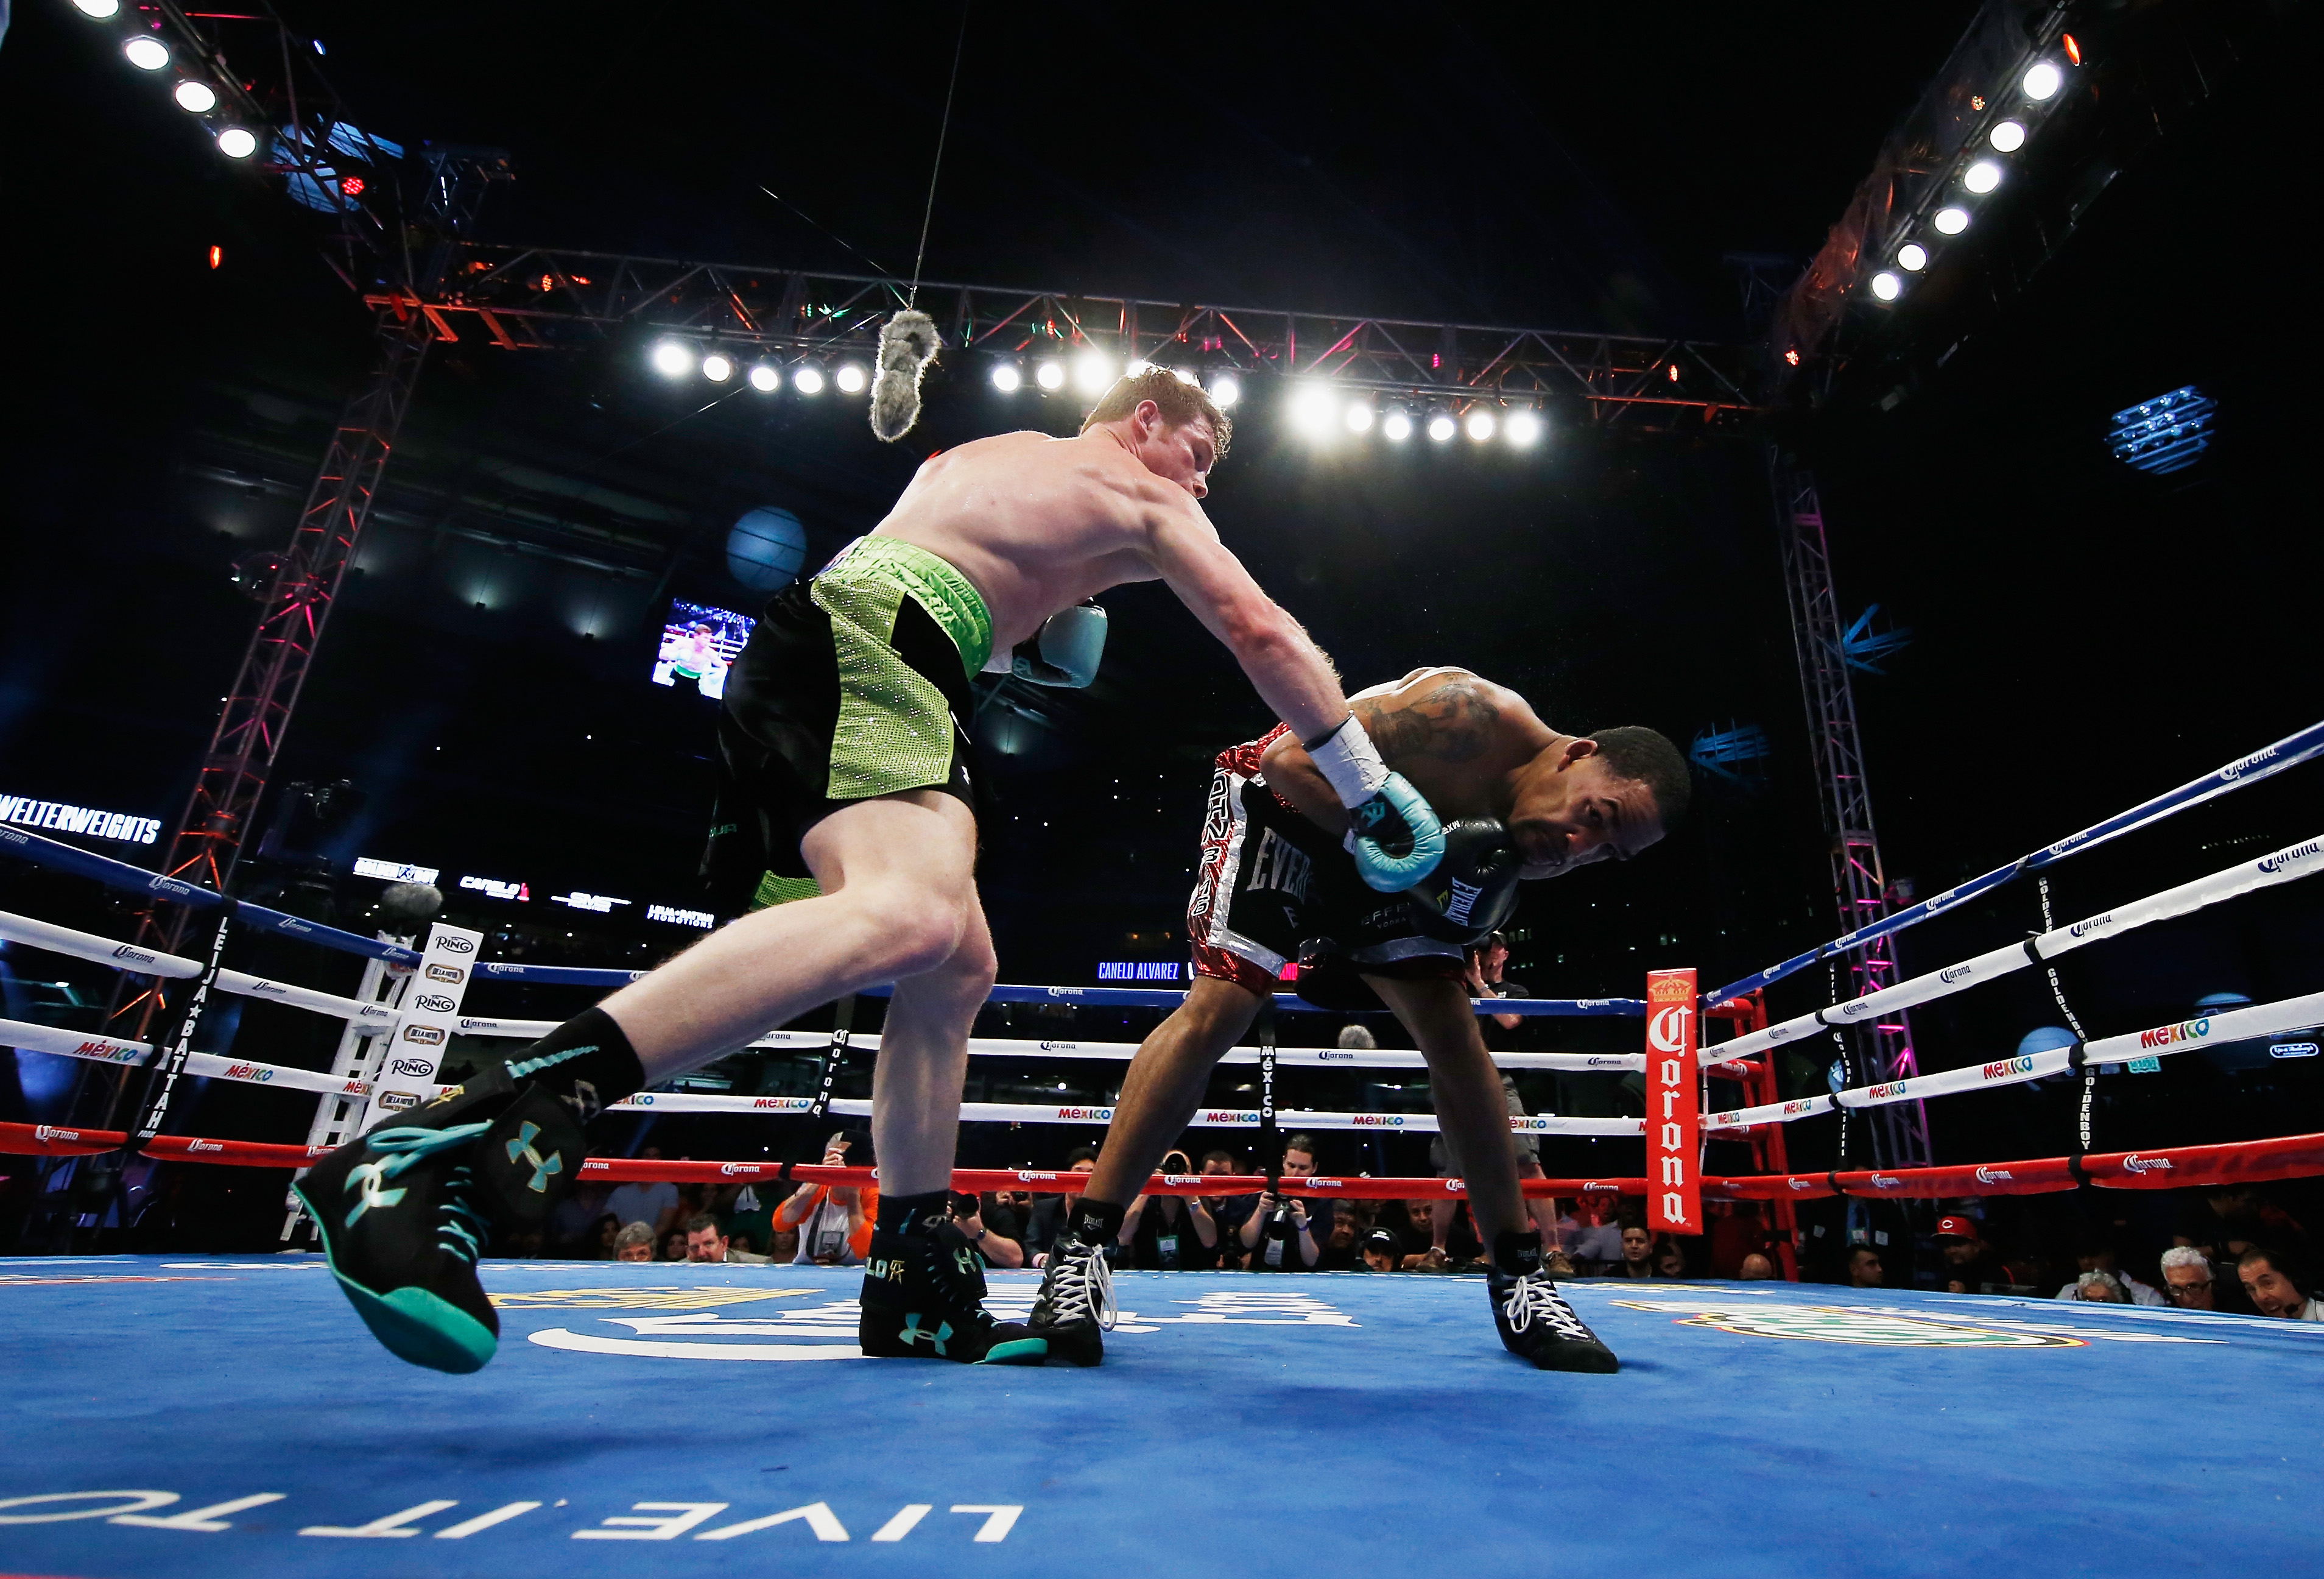 Canelo Alvarez delivers a right hand James Kirkland during their super welterweight bout at Minute Maid Park on May 9, 2015 in Houston, (Getty)